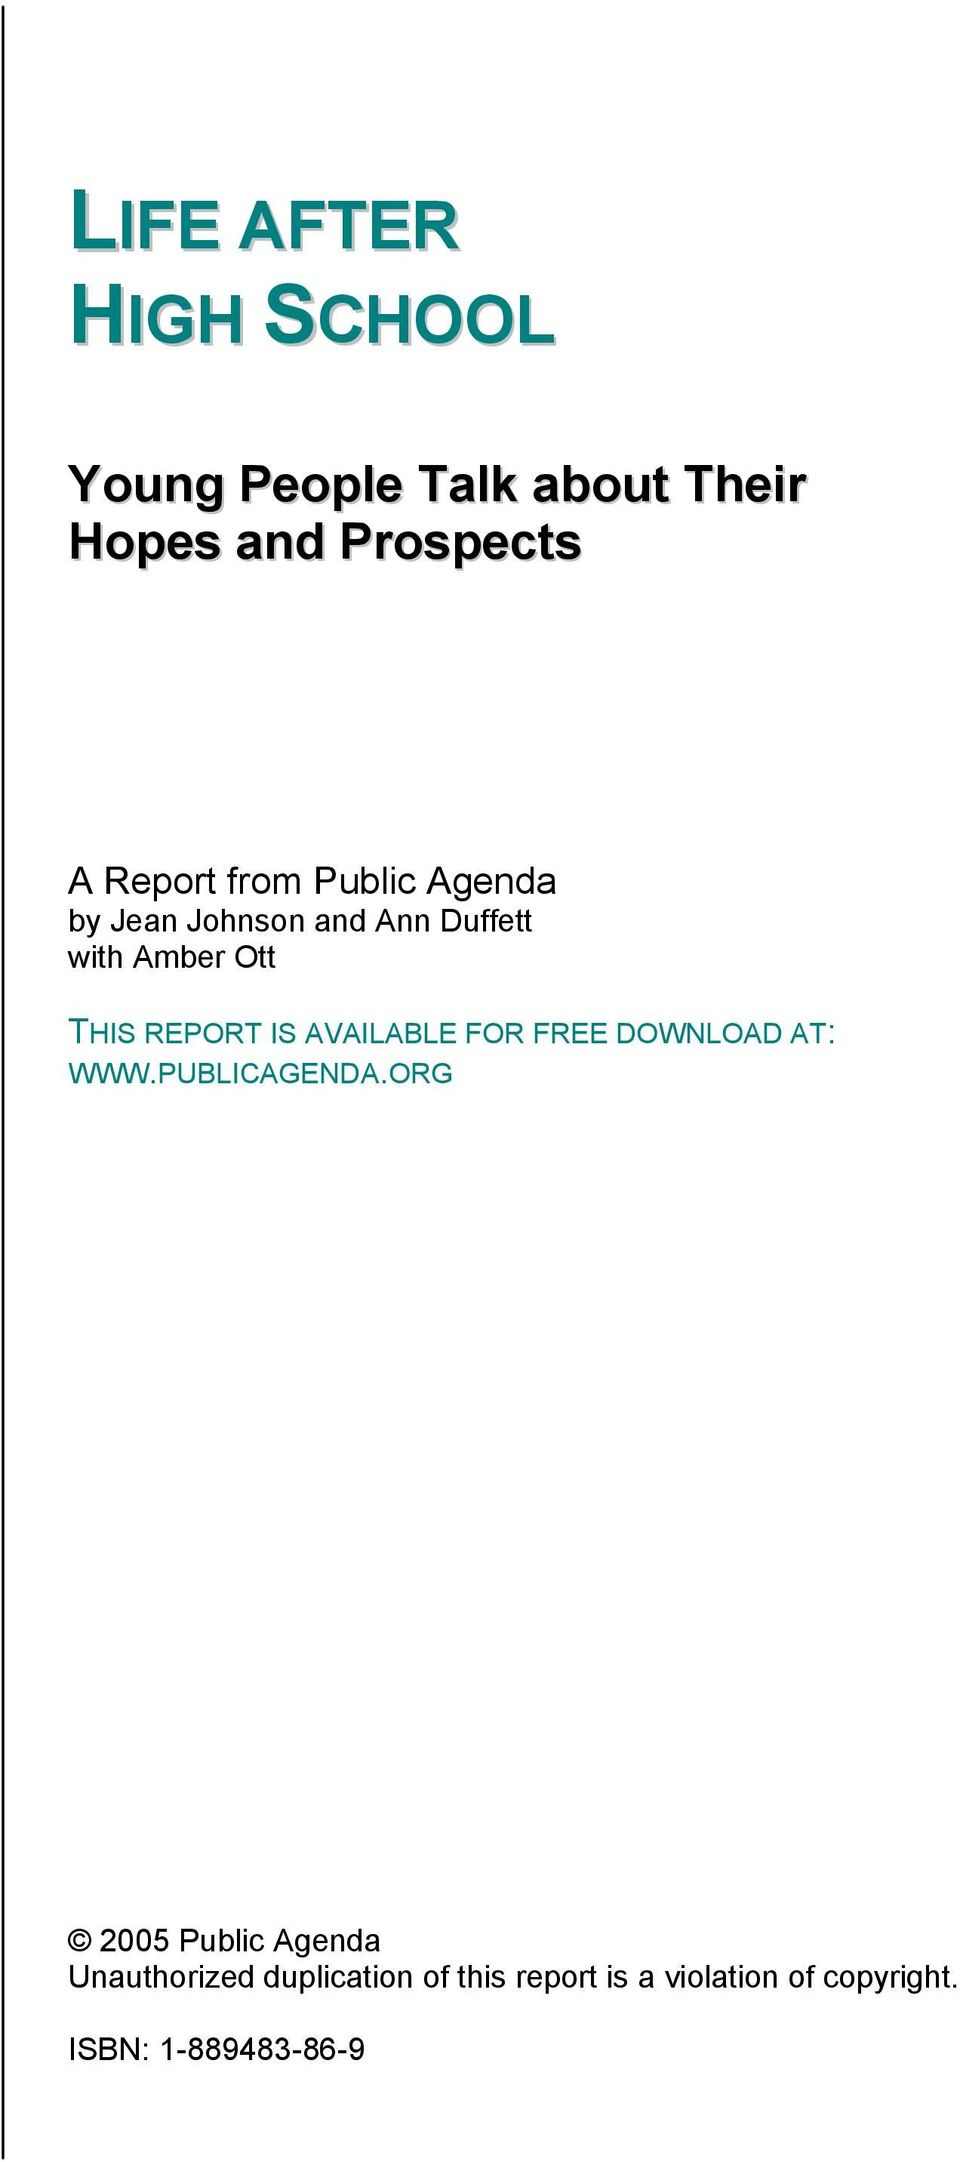 REPORT IS AVAILABLE FOR FREE DOWNLOAD AT: WWW.PUBLICAGENDA.